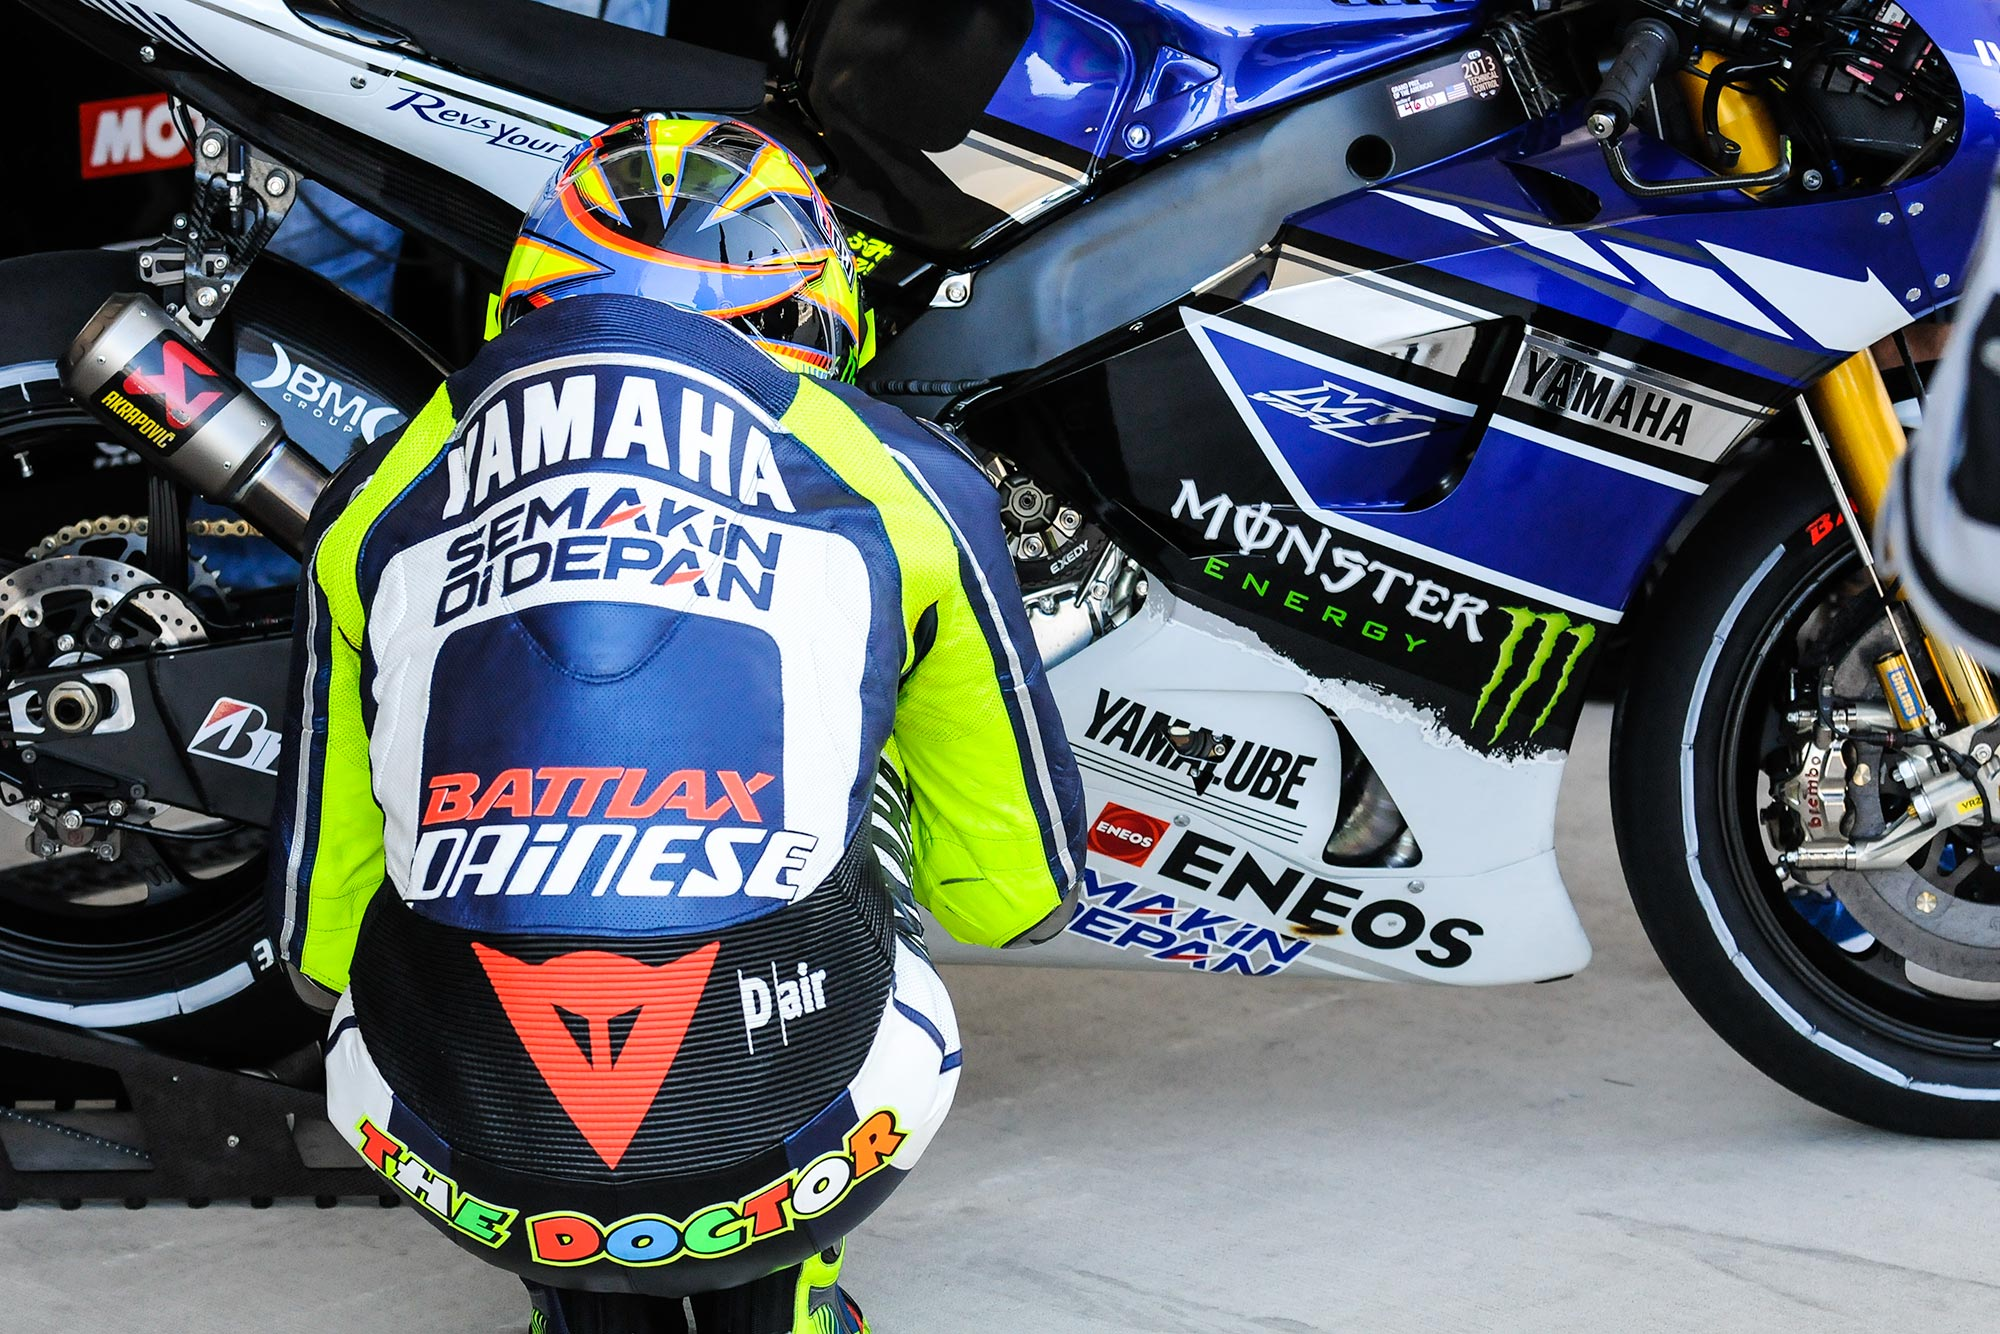 Up-Close with the 2013 Yamaha YZR-M1 - Asphalt & Rubber